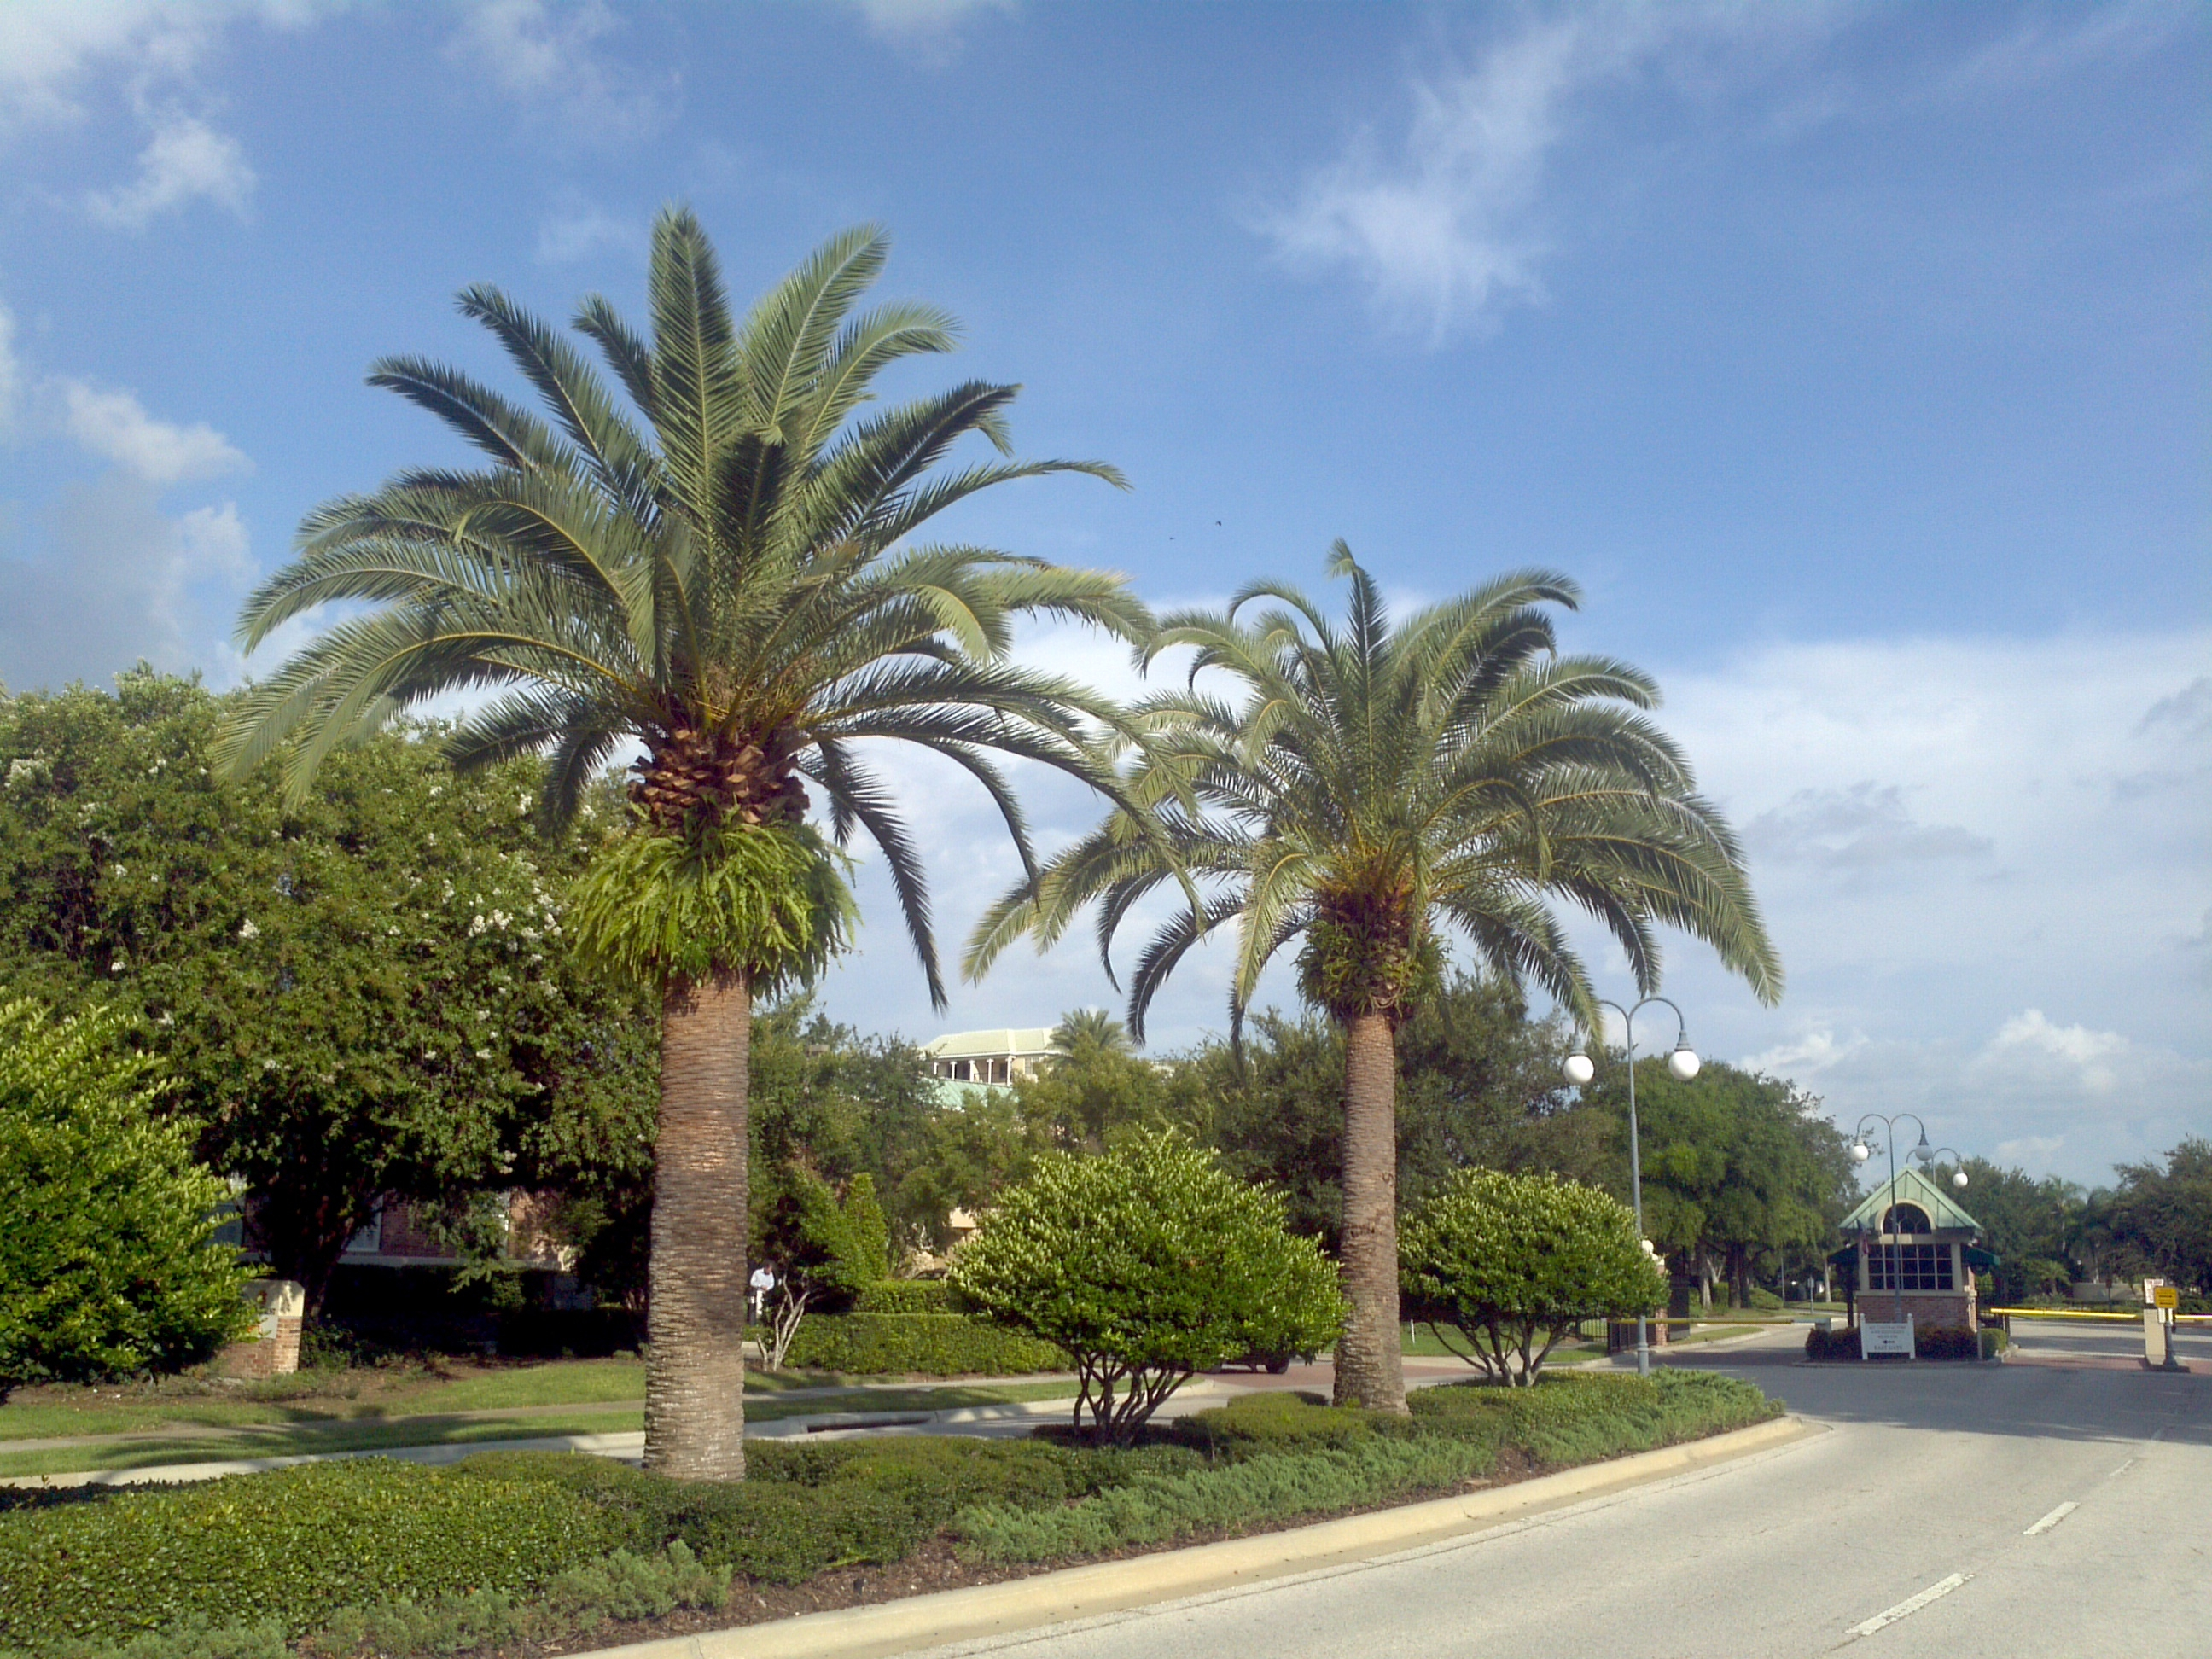 Sylvester Palm Trees - Enlarge